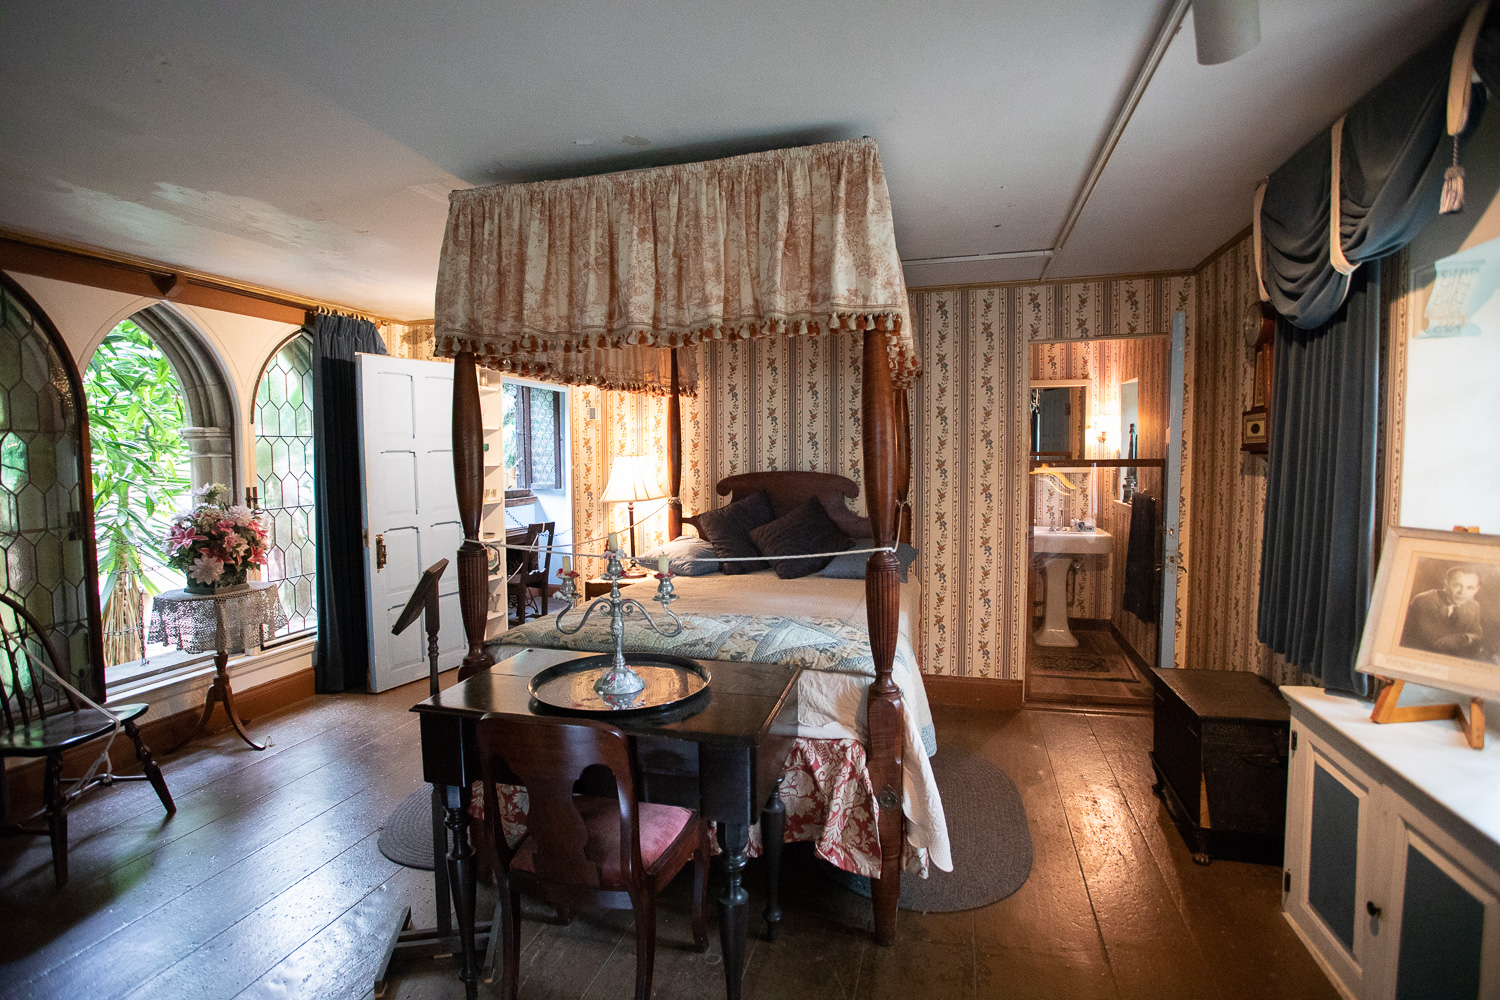 A guest bedroom. Mr. Hammond was a known prankster, and this room could be shut on all four sides by Mr. Hammond if he so chose.